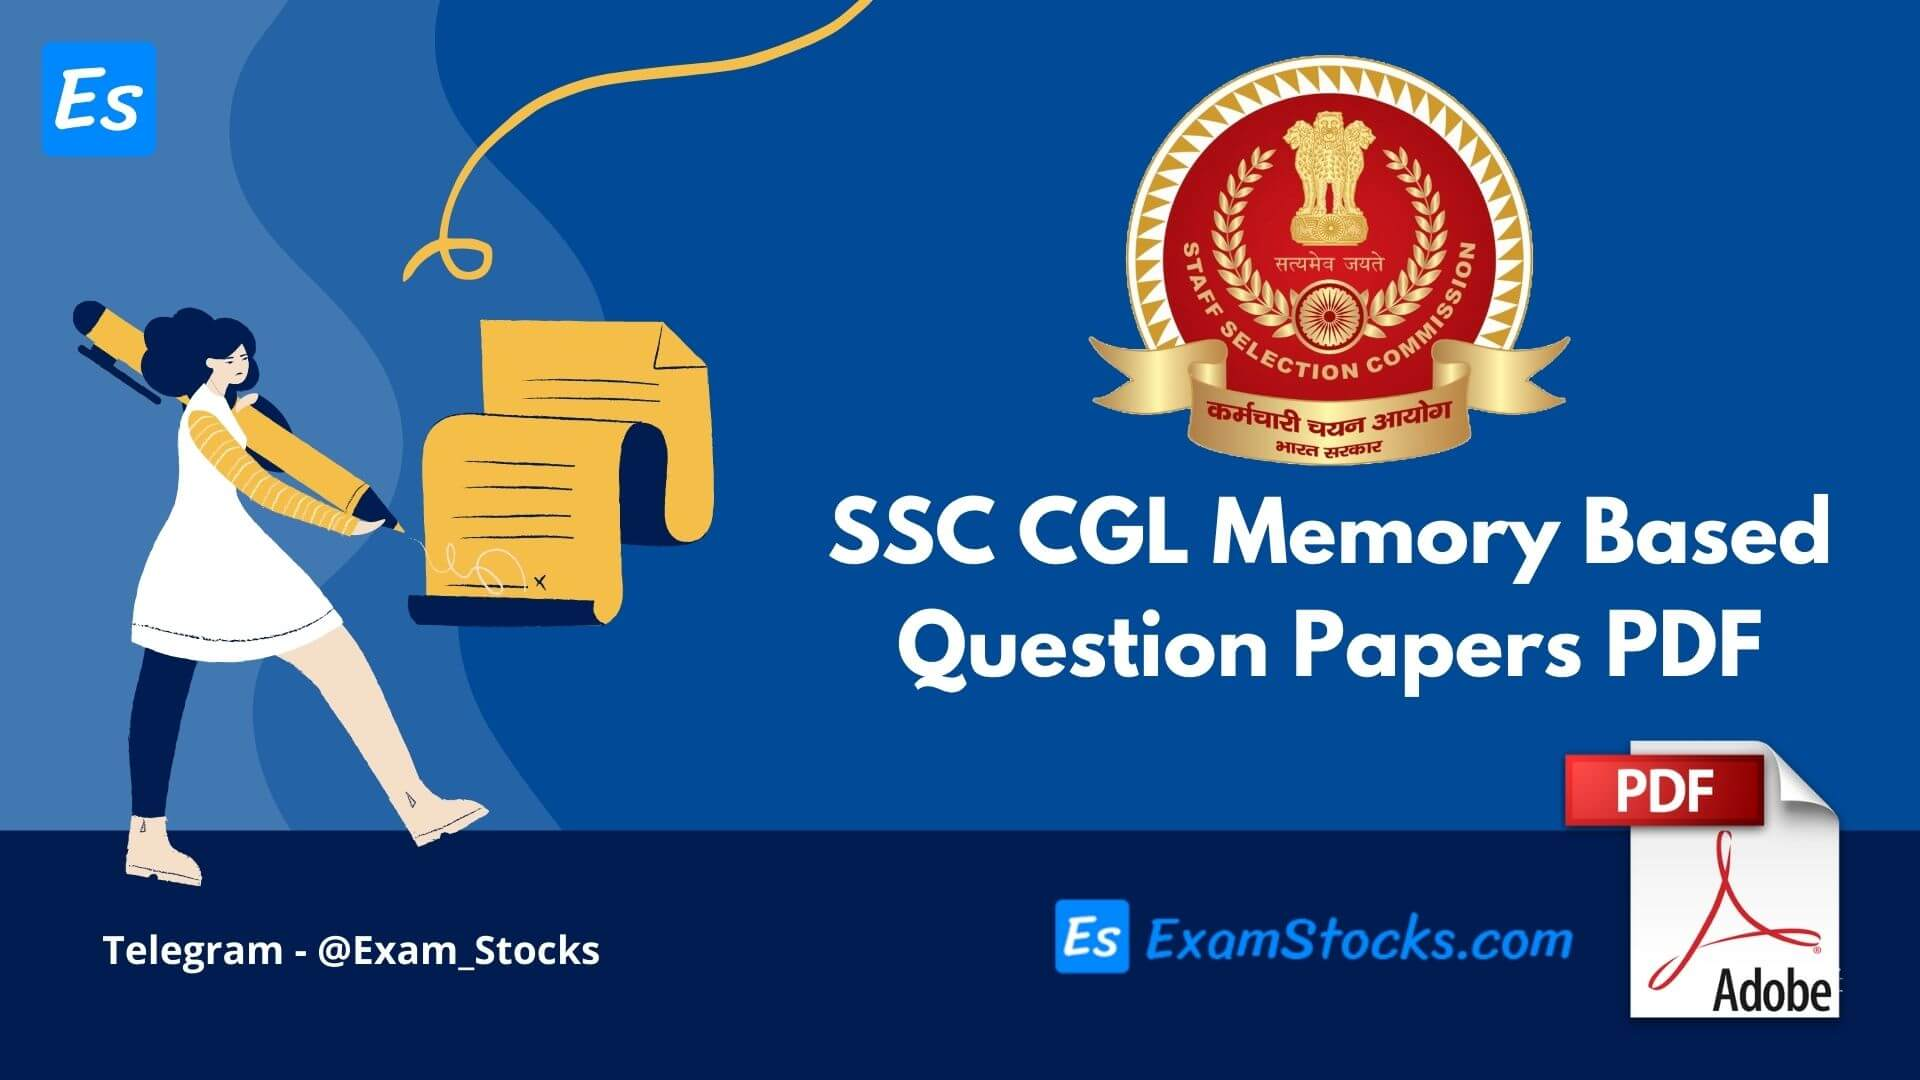 SSC CGL Memory Based Question Papers PDF